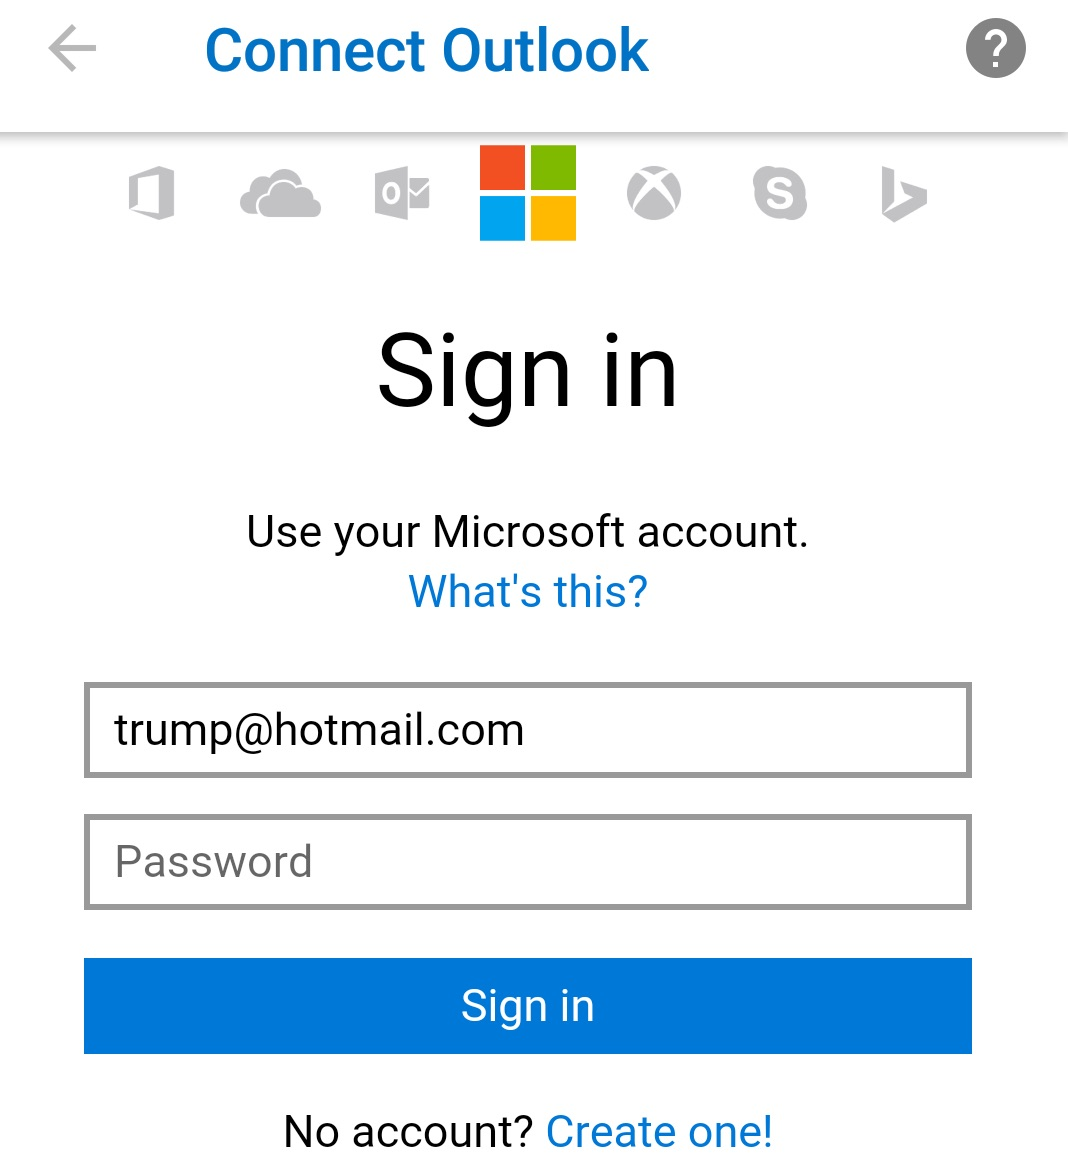 hotmail android connect outlook